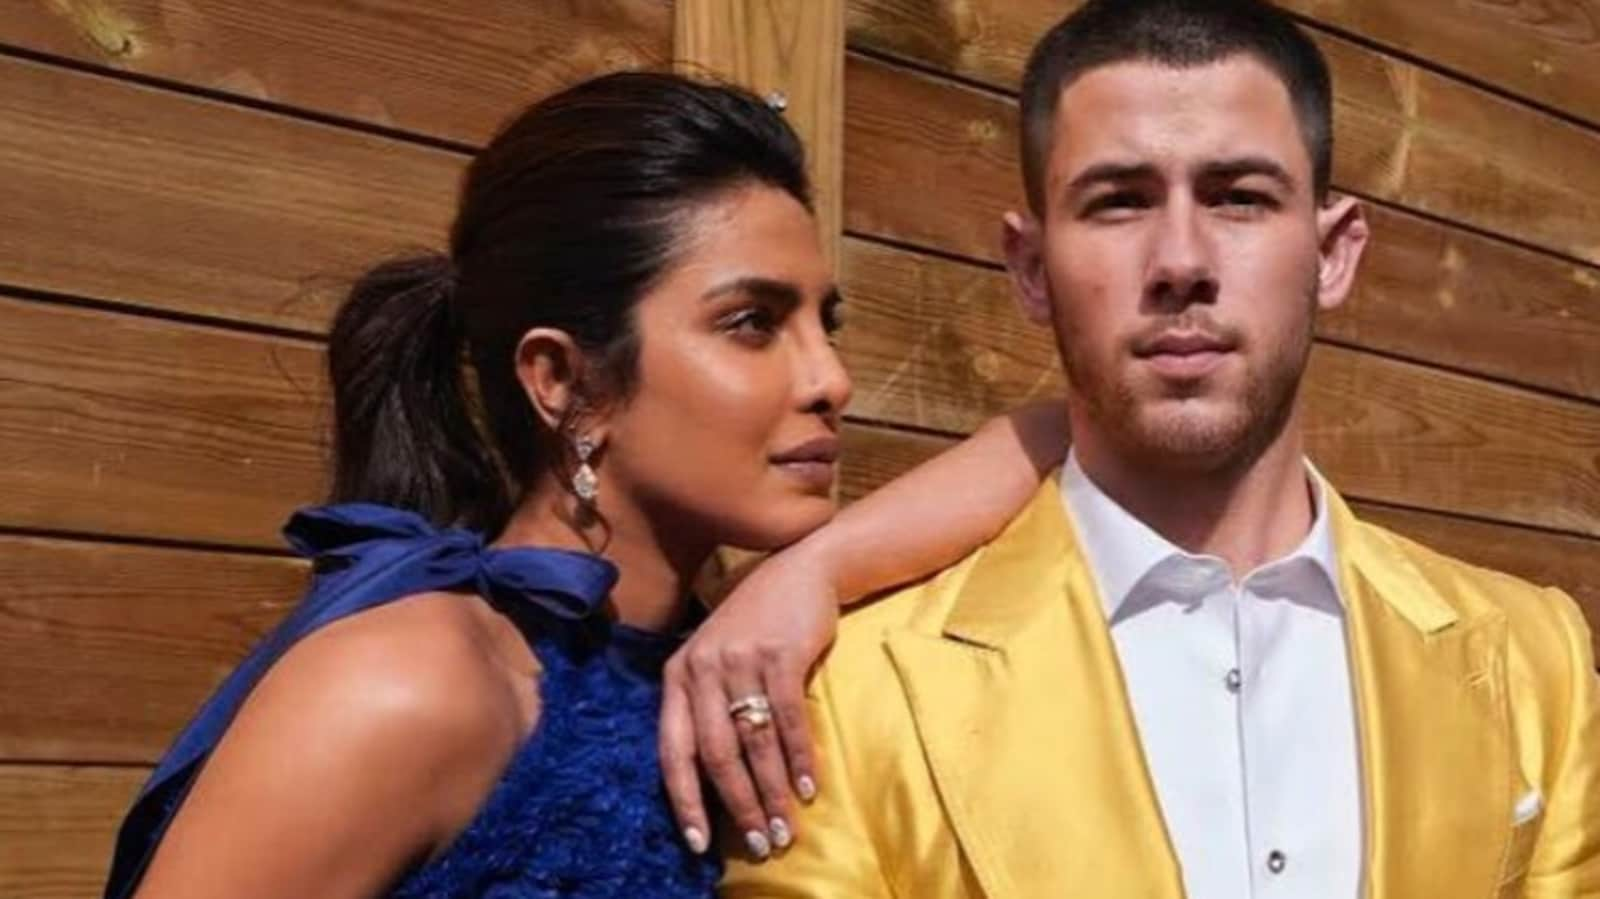 Nick Jonas reveals life lessons learned from Priyanka Chopra: 'She's taught me about taking it easy' - Hindustan Times